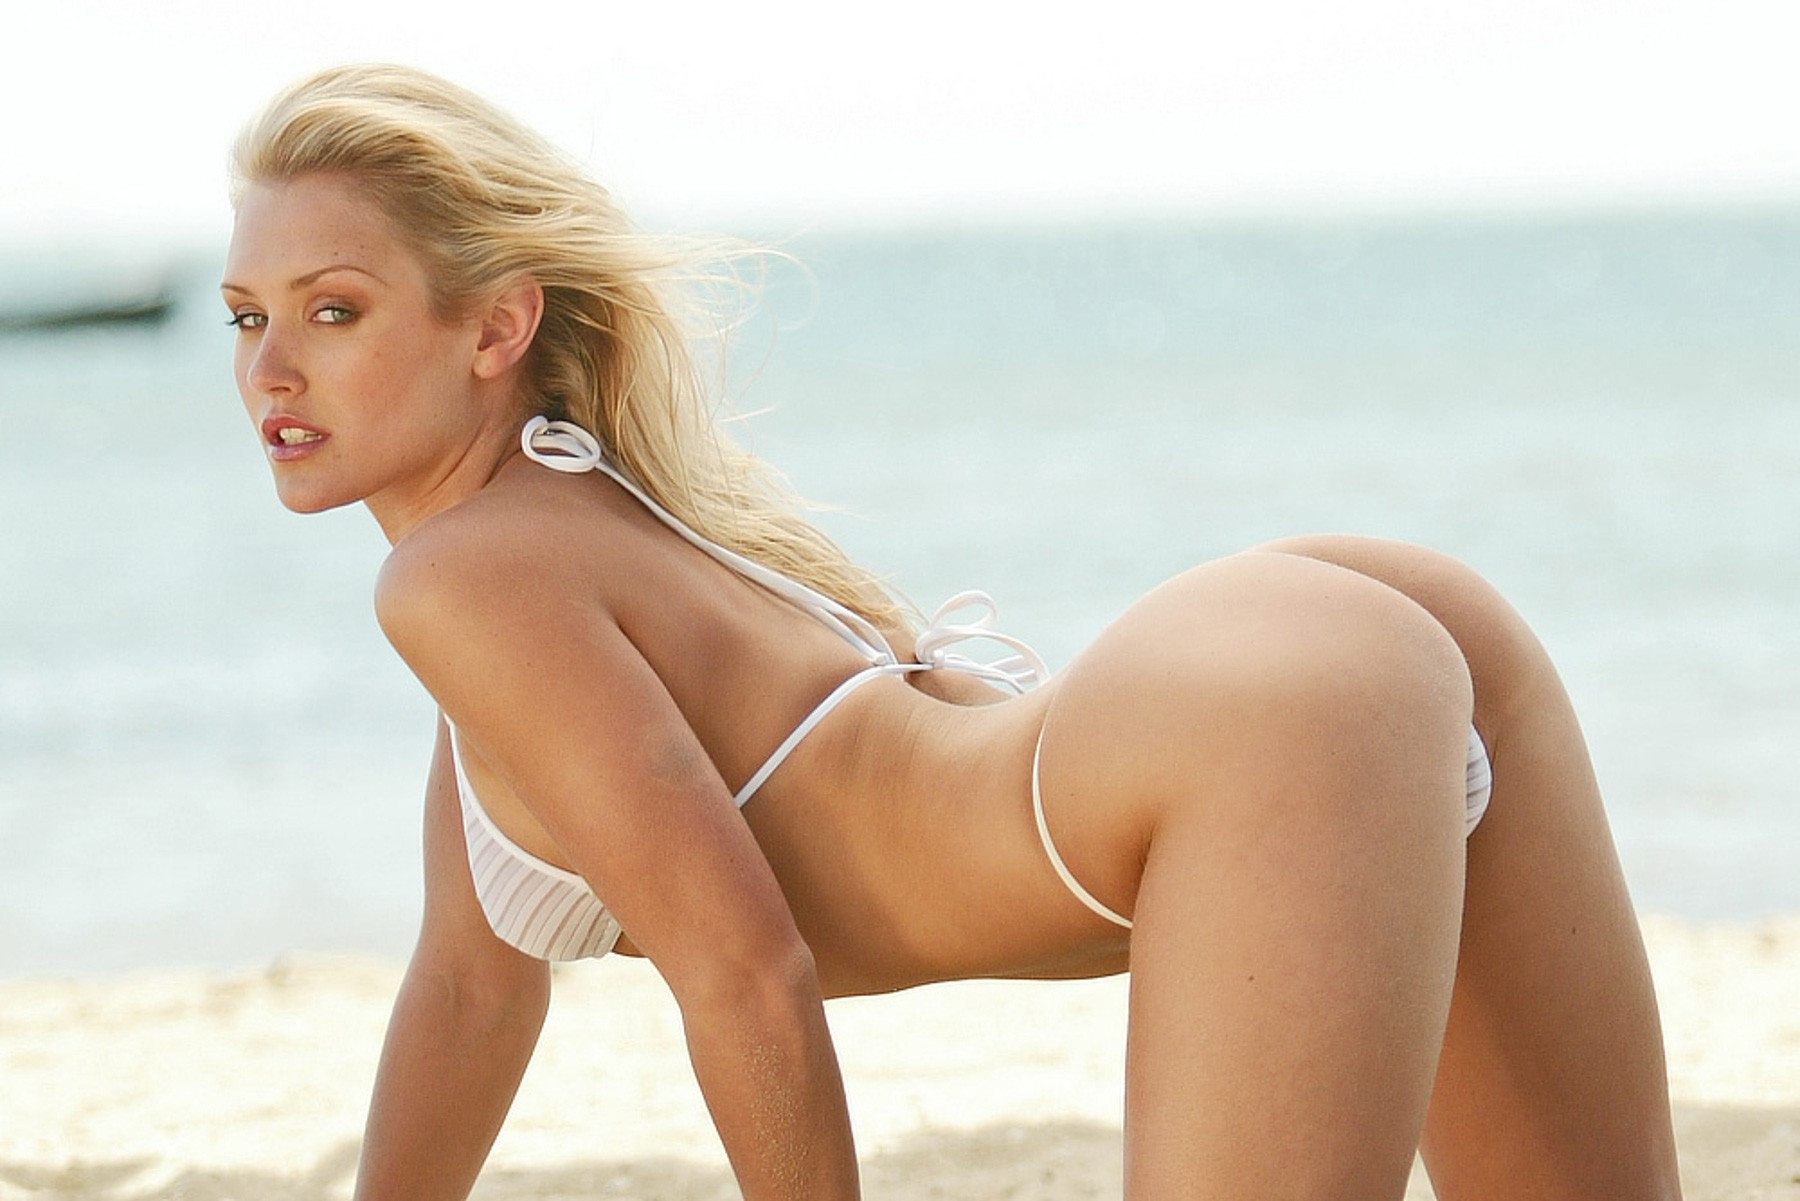 Picture tagged with: Blonde, Nicky Whelan, Ass - Butt, Beach, Bikini, Celebrity - Star